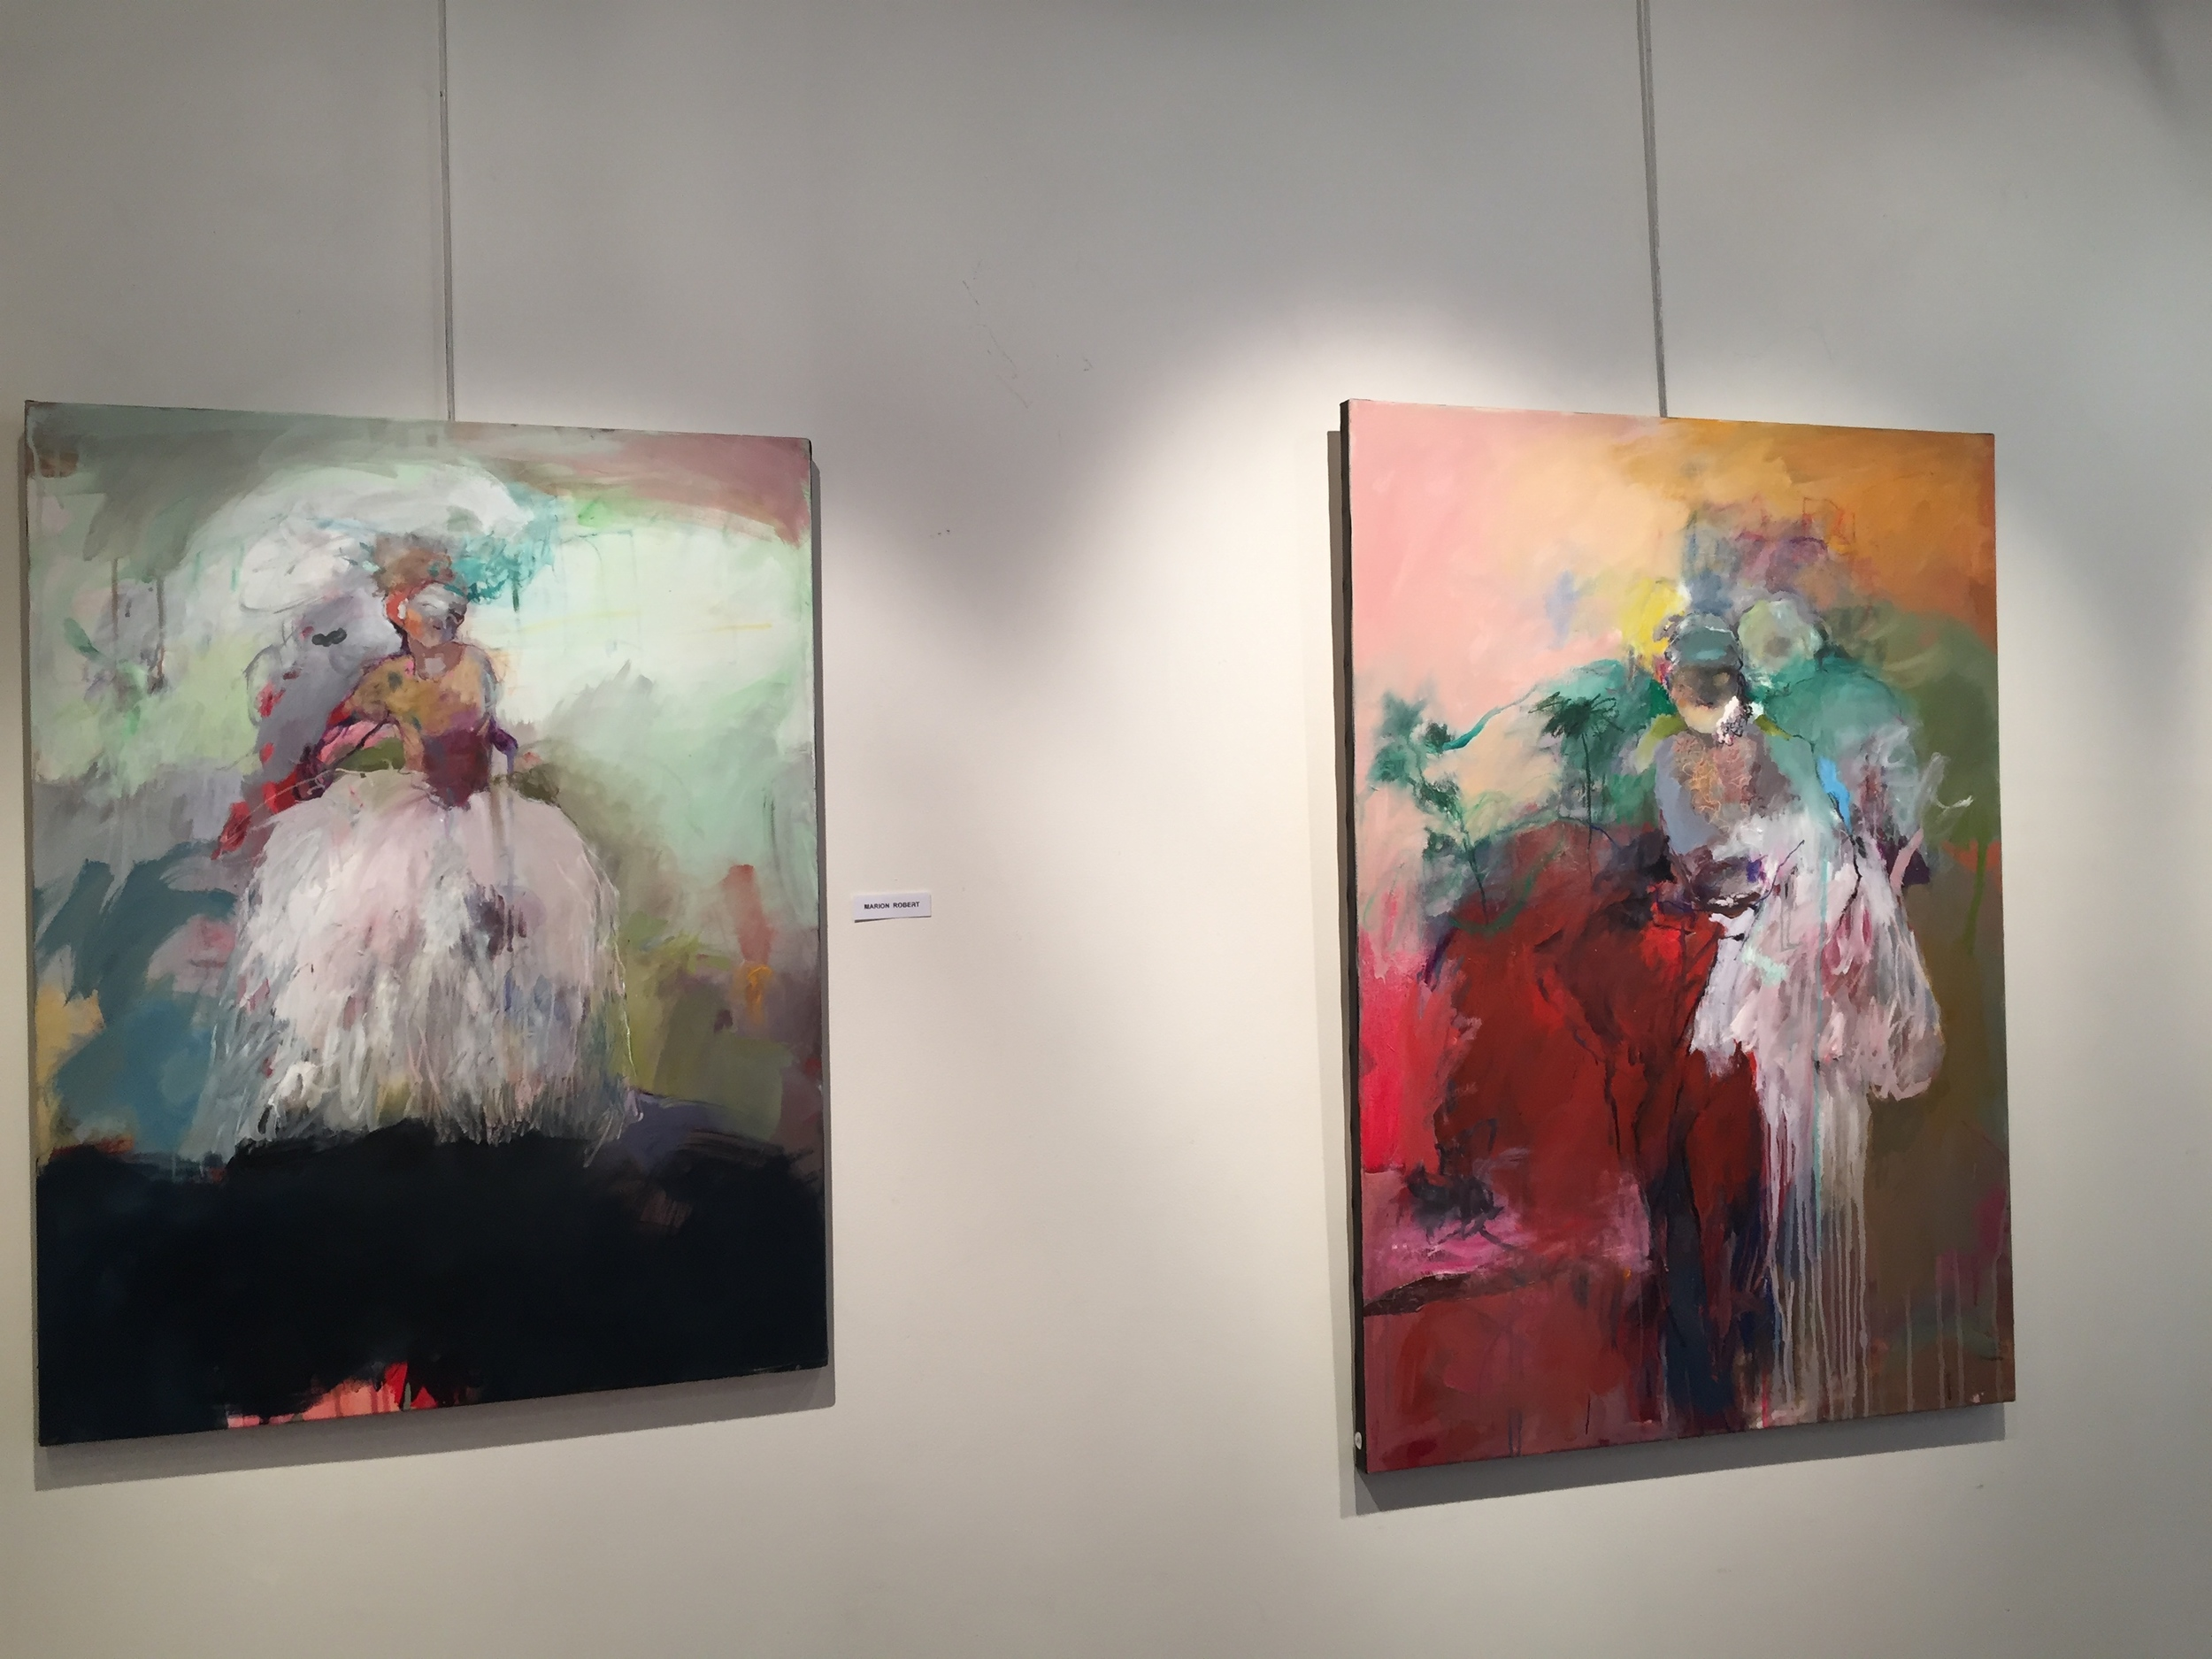 Parisian Art - we brought home the one on the left!